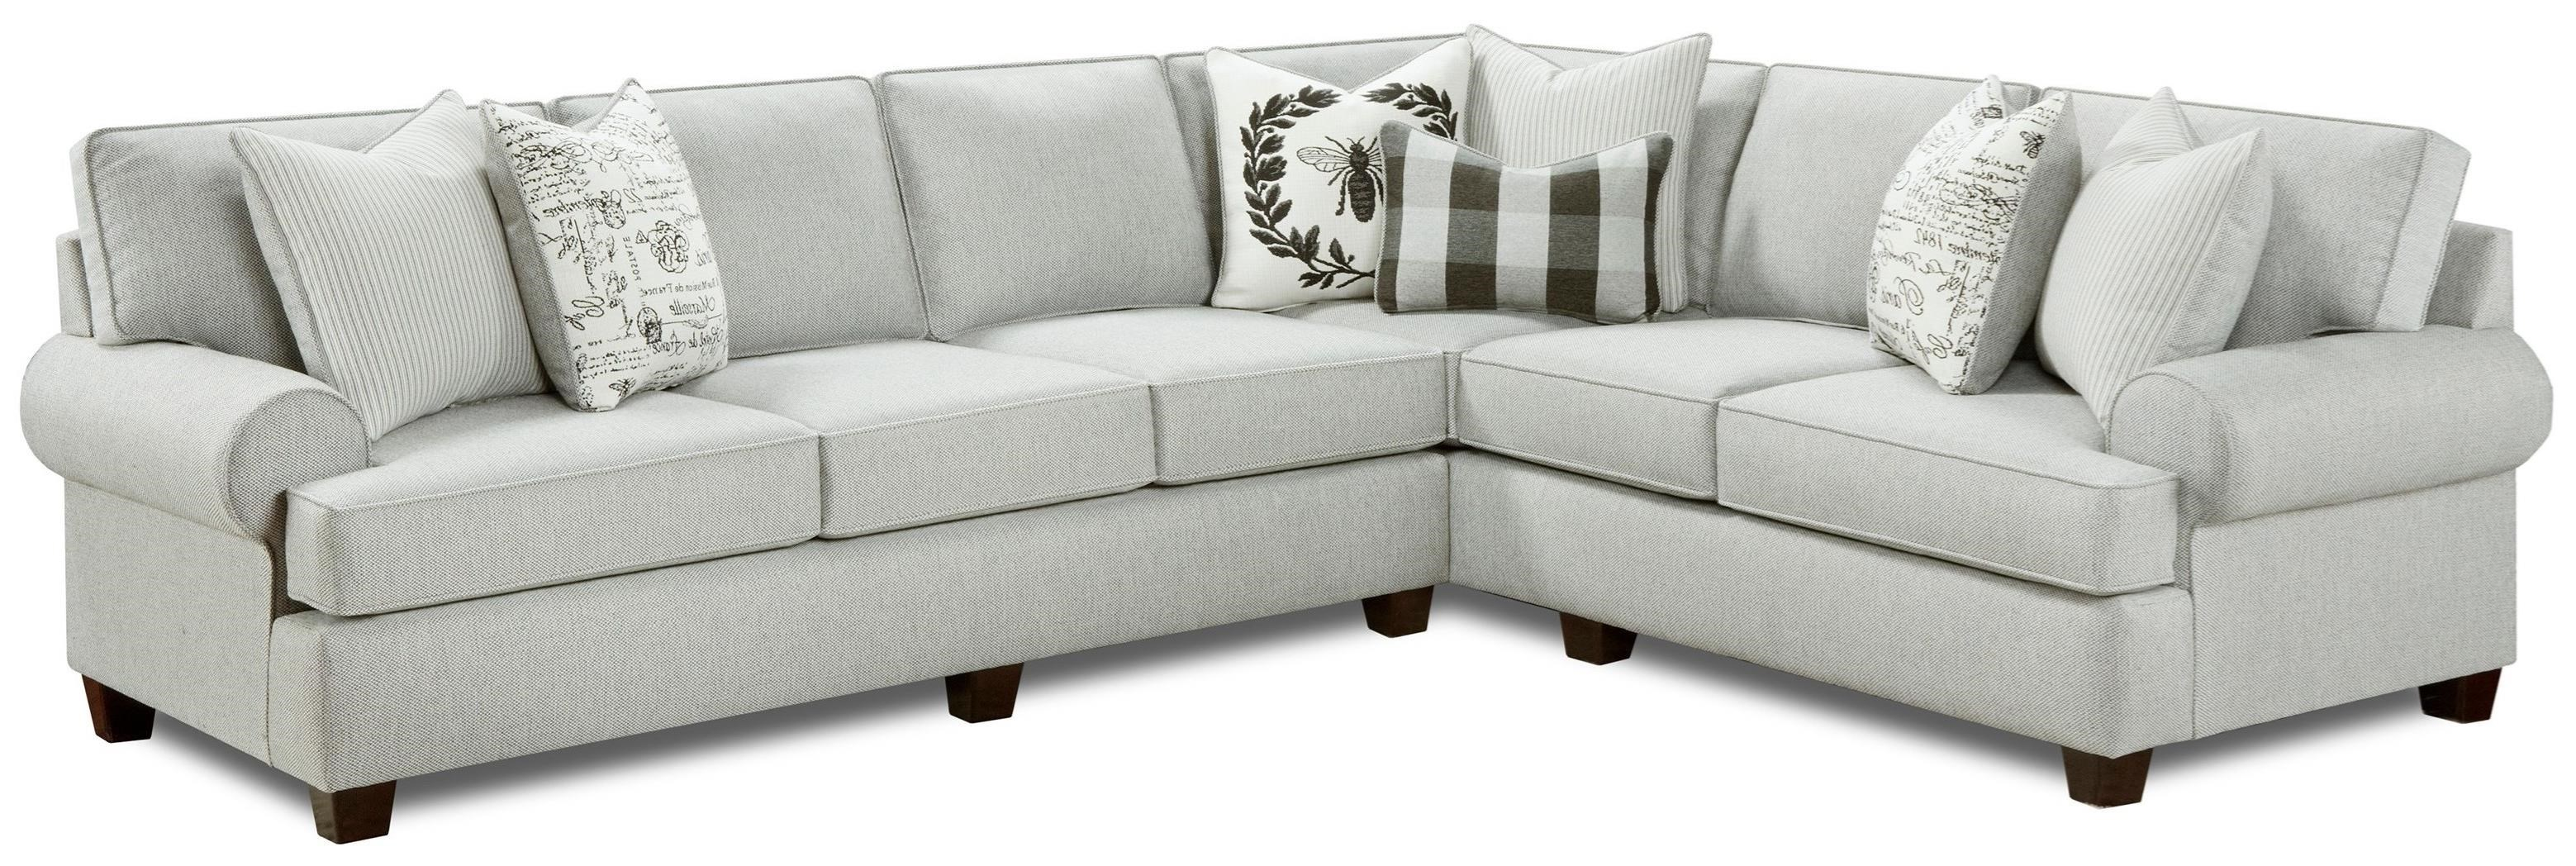 39-00 2-Piece Sectional by Fusion Furniture at Furniture Superstore - Rochester, MN